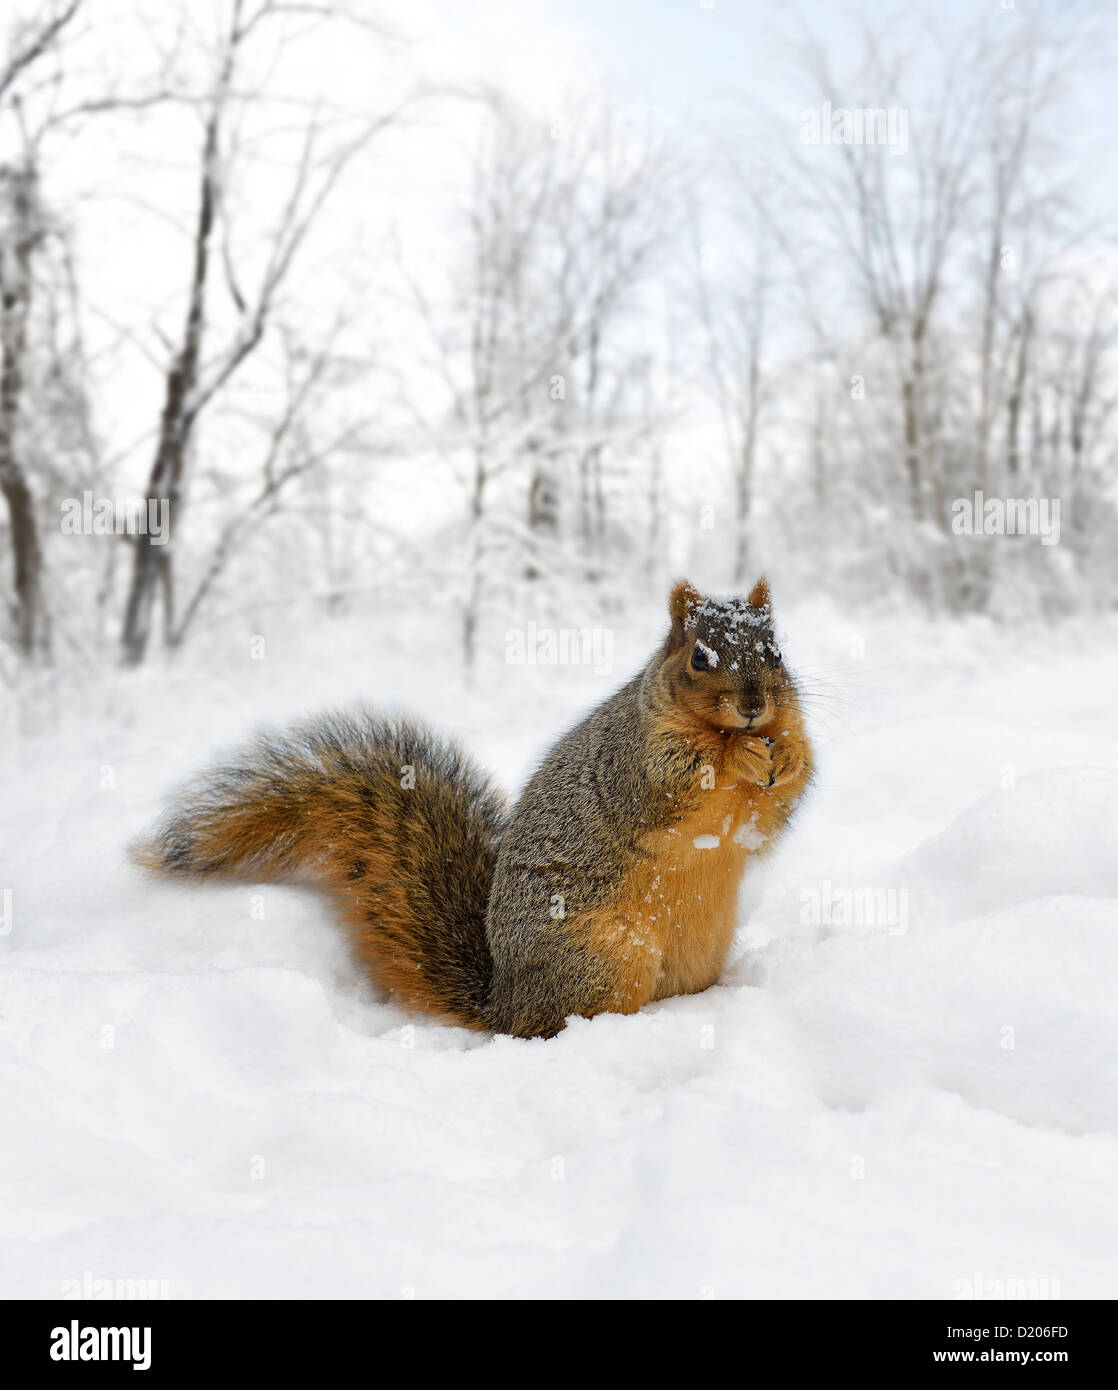 Fox Squirrel sulla neve Foto Stock